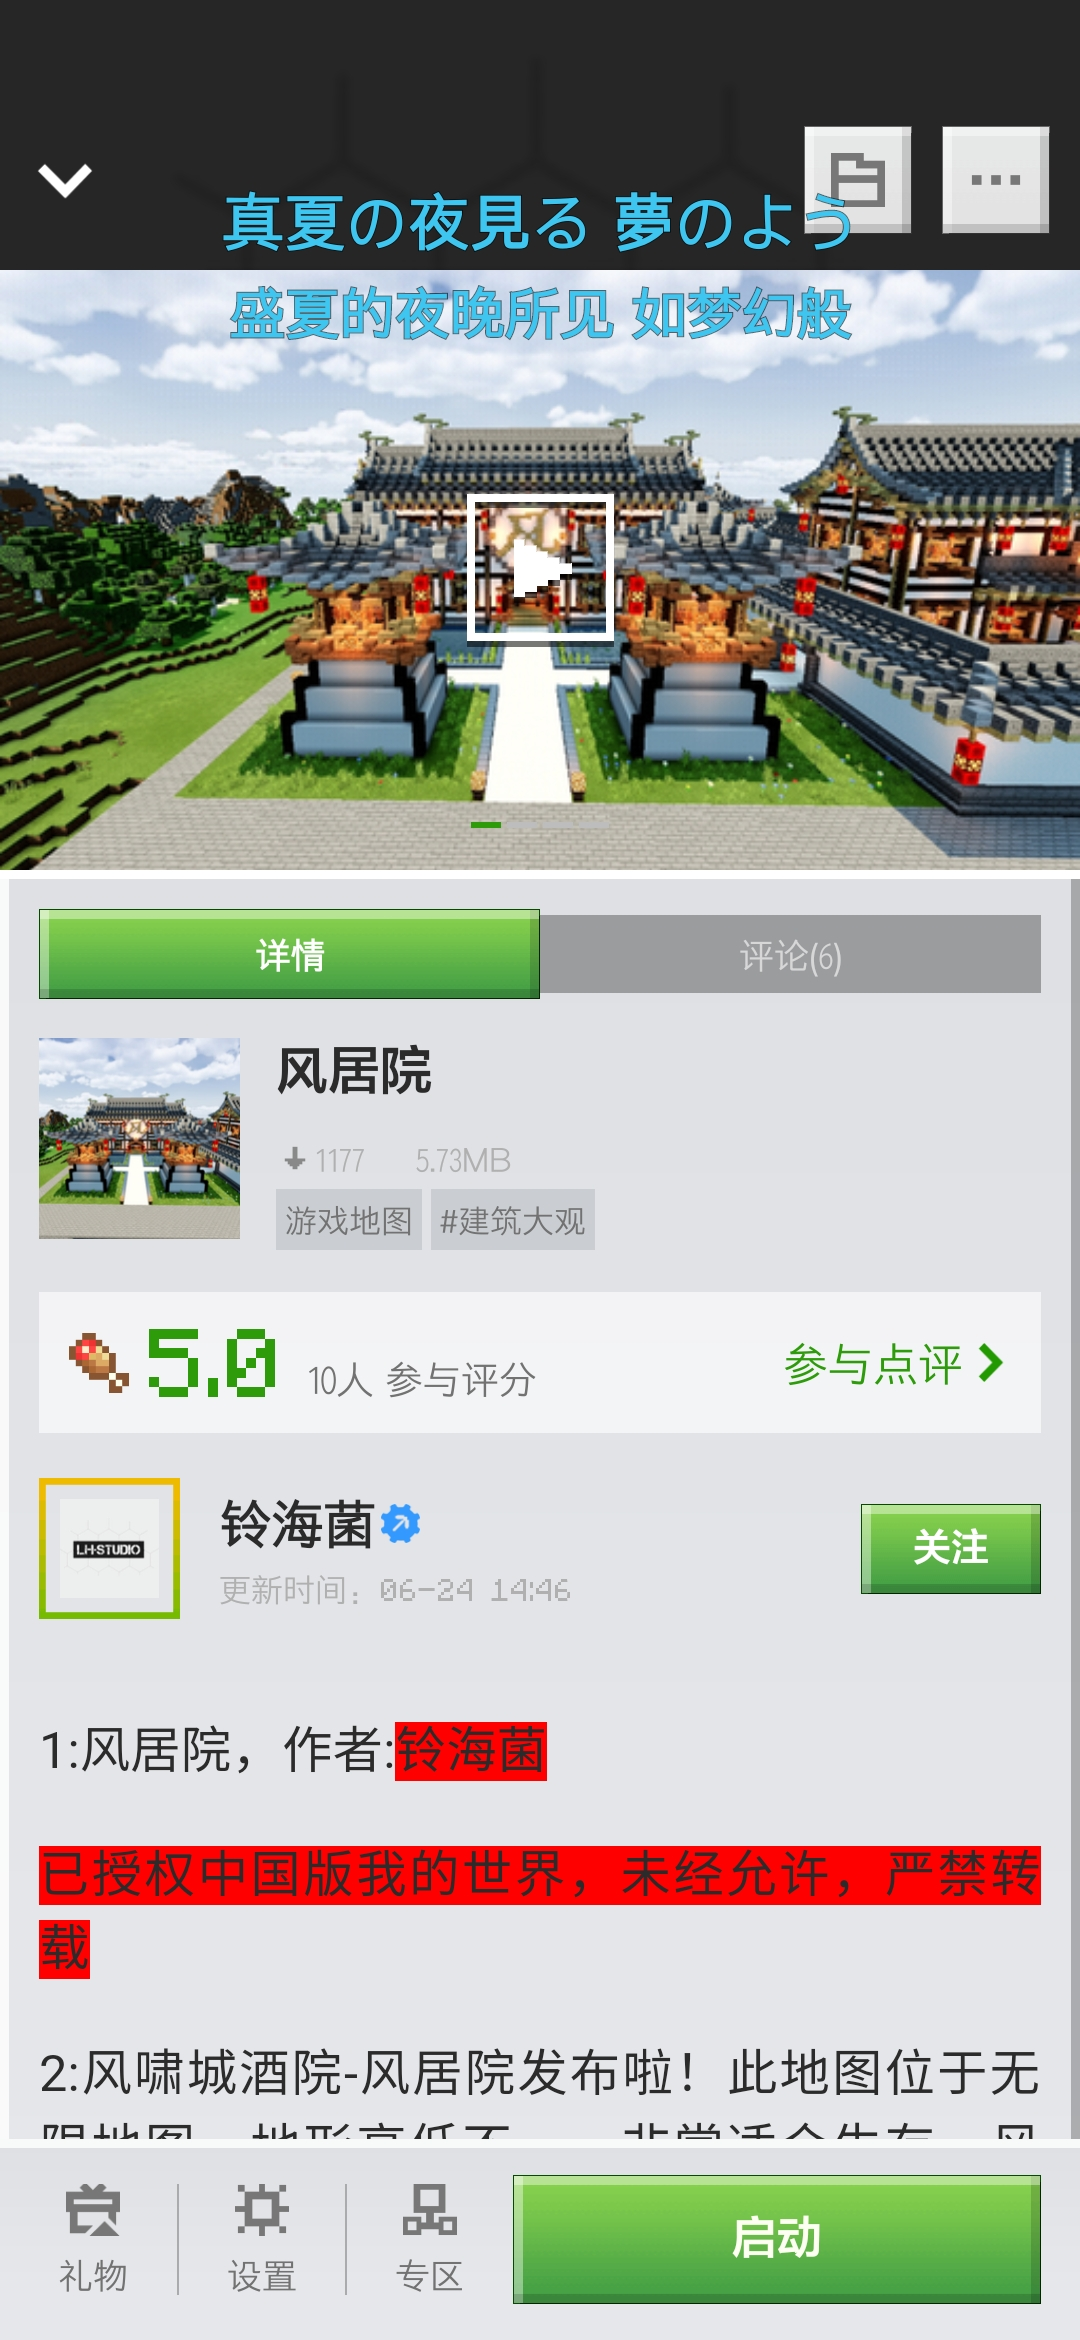 Screenshot_20200702_175553_com.netease.x19.jpg